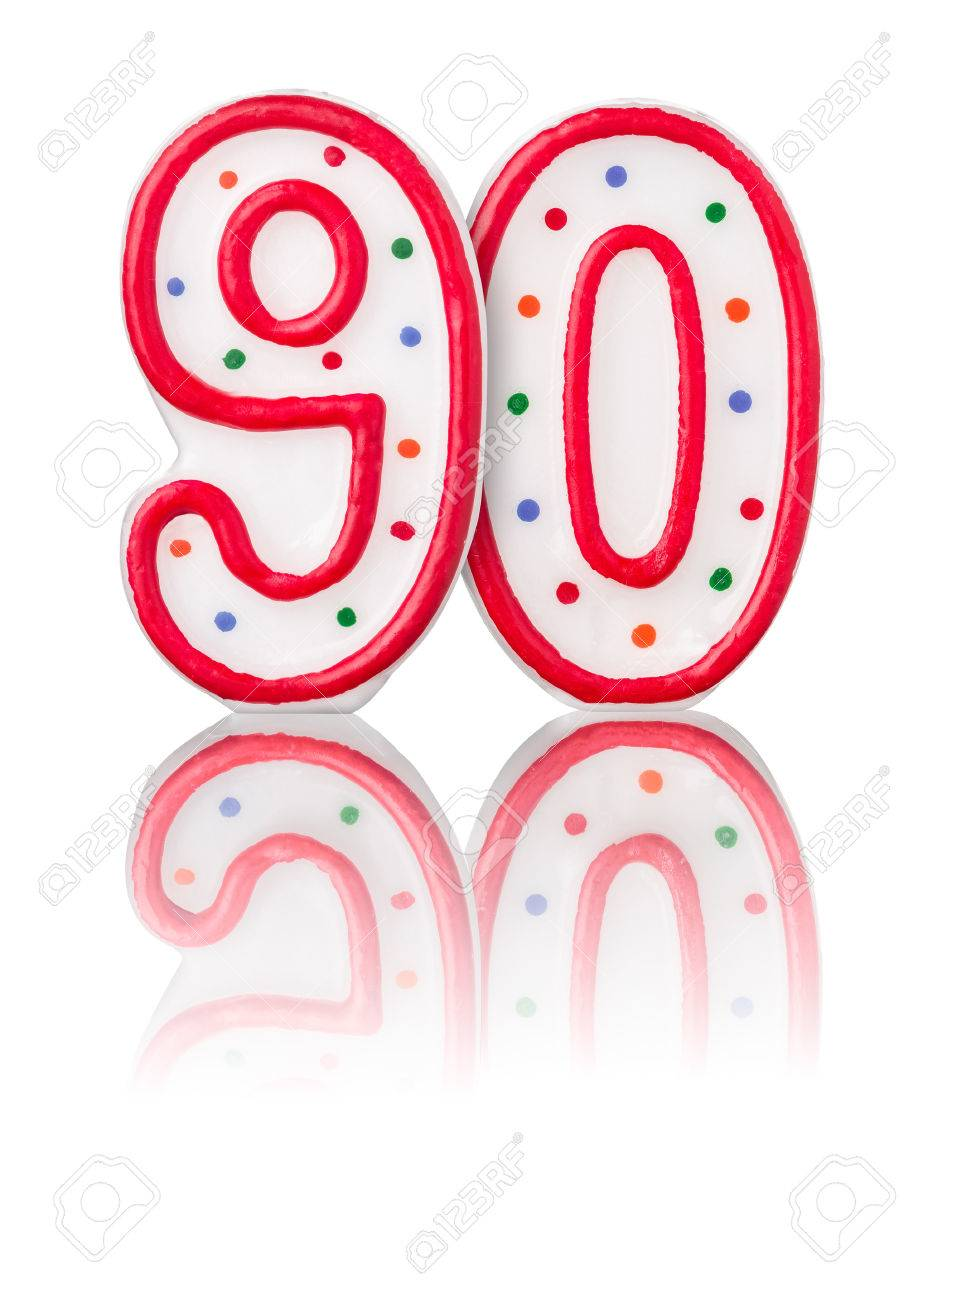 free number 90 clipart for your inspiration.